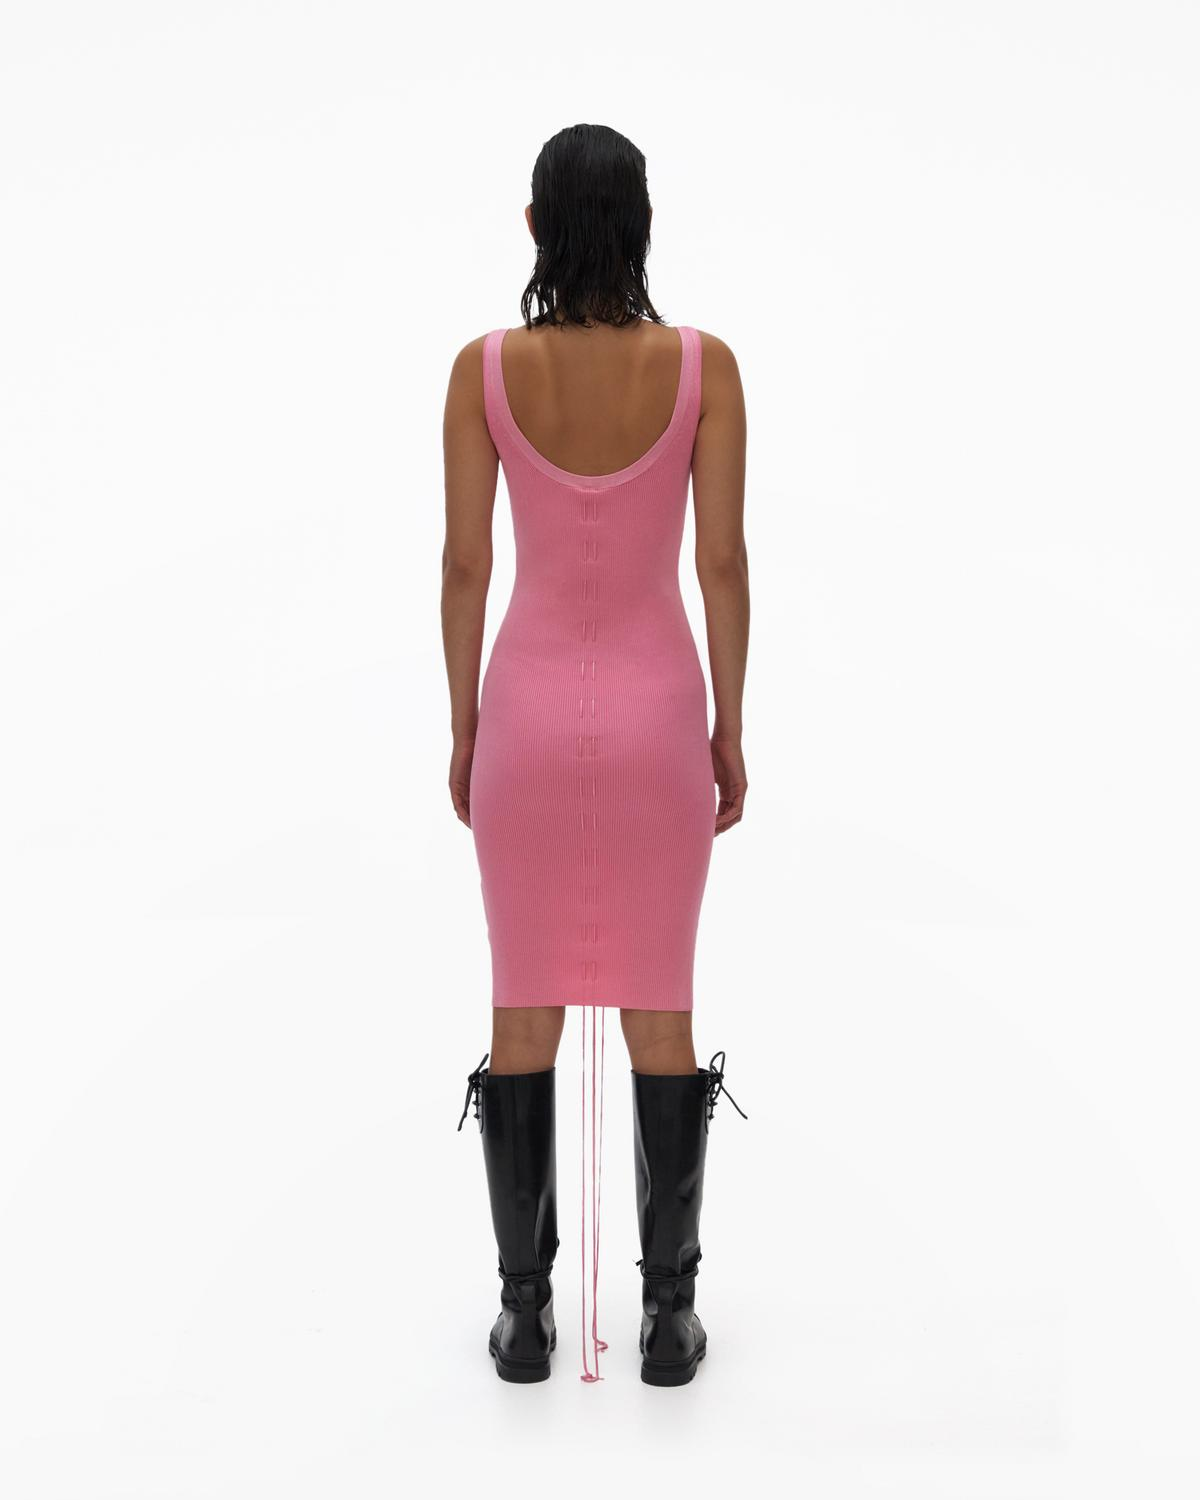 Lacing Dress